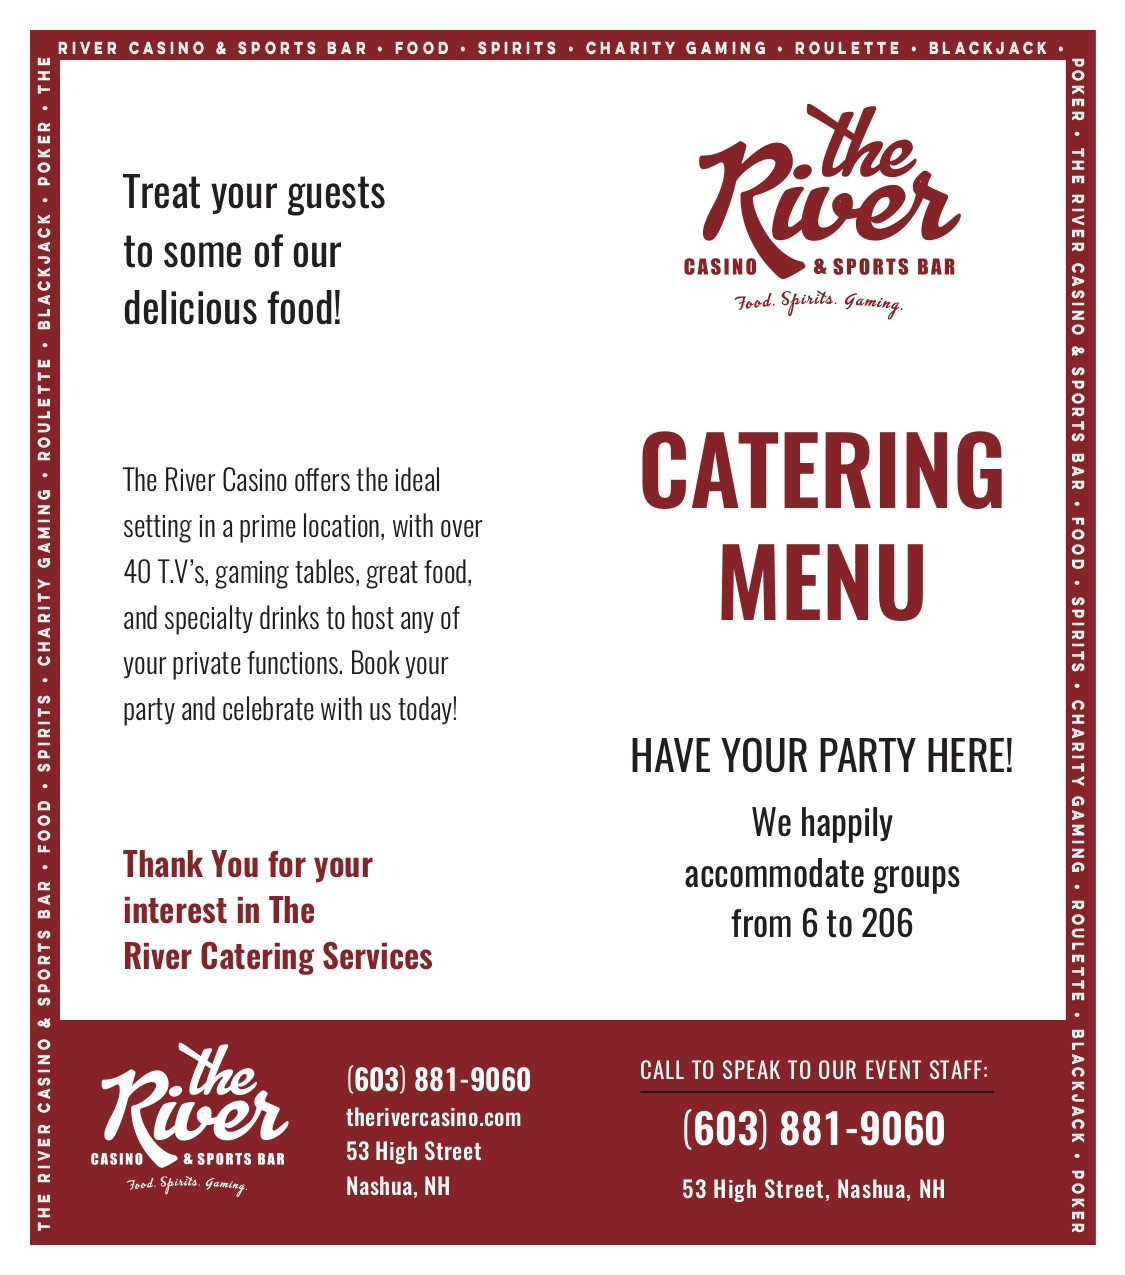 the River Casino and Sports Bar Catering Menu A